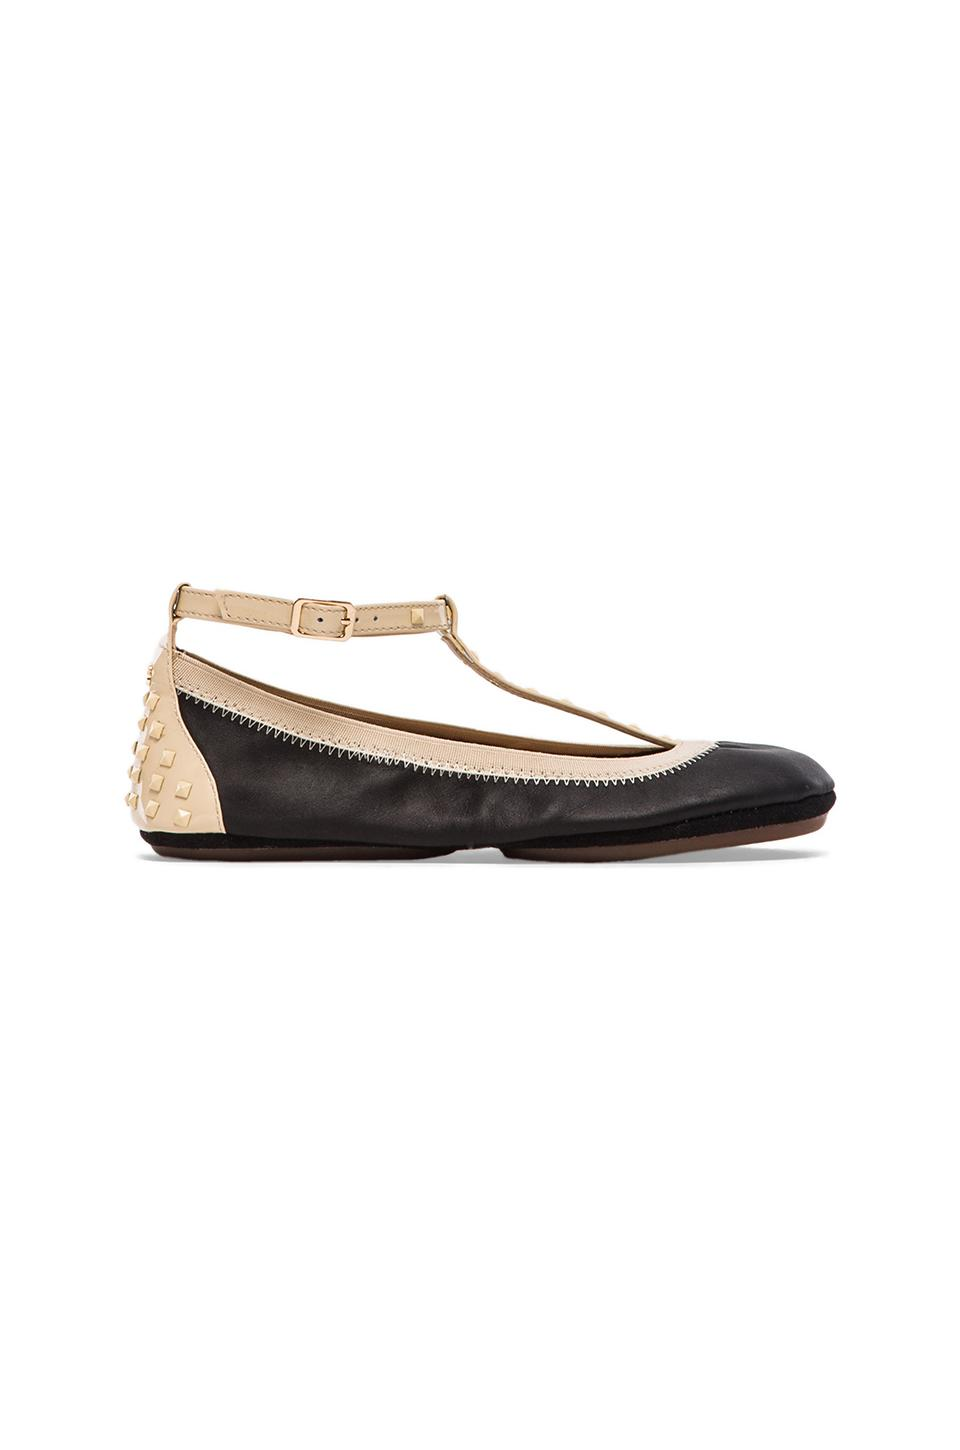 Yosi Samra Erica Soft Leather Strap Flat in Biscotti/Black